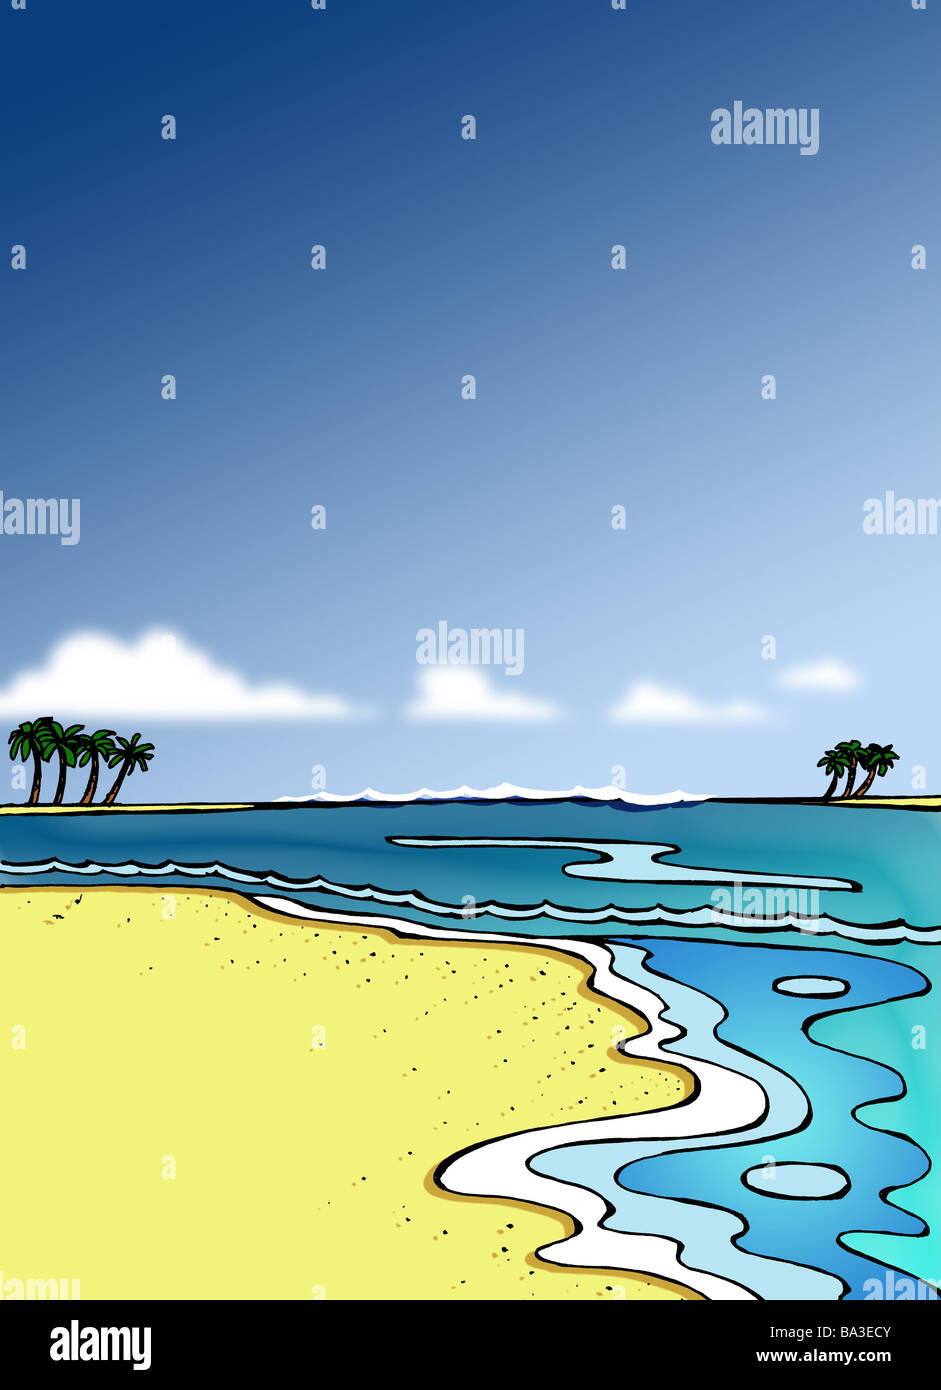 Illustration Beach Sea Islands Graphics Drawing Watercolor Sandy Palms Palm Neighbor Human Empty